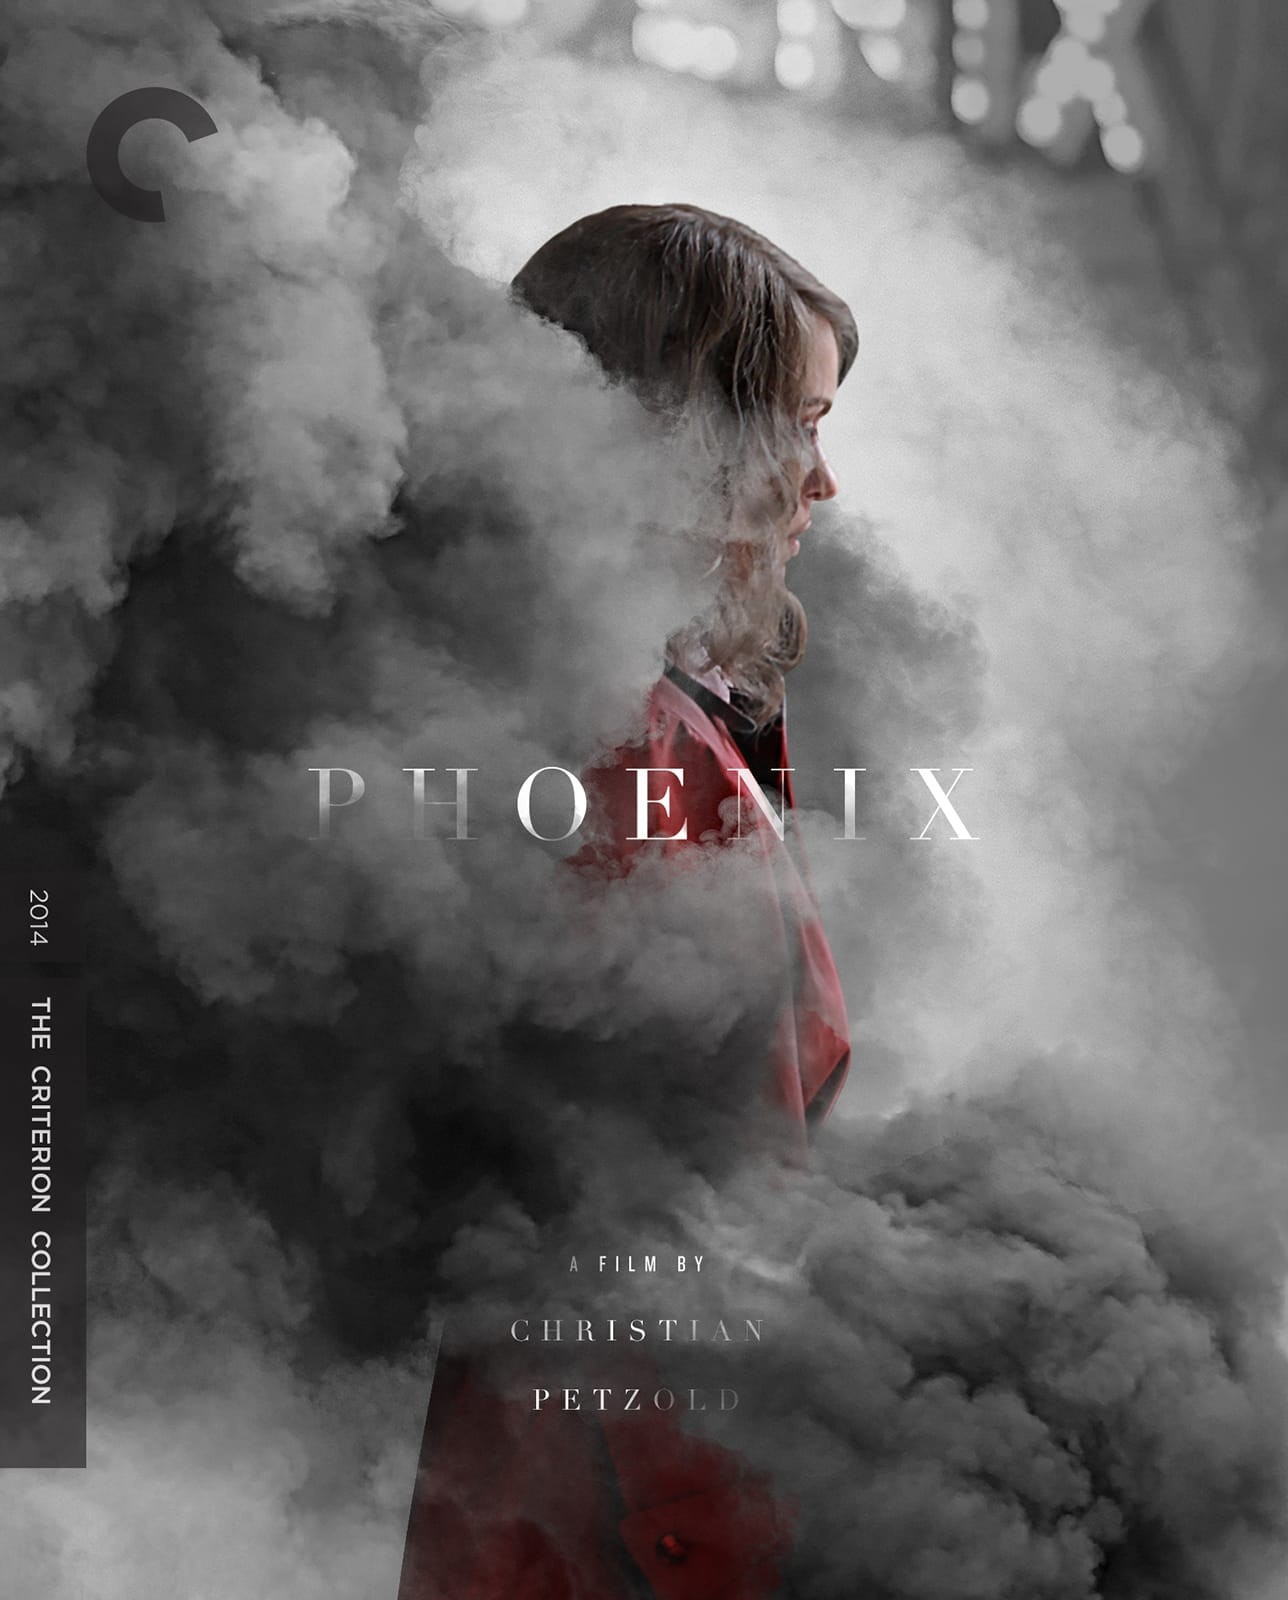 Phoenix (2014) The Criterion Collection Blu-ray